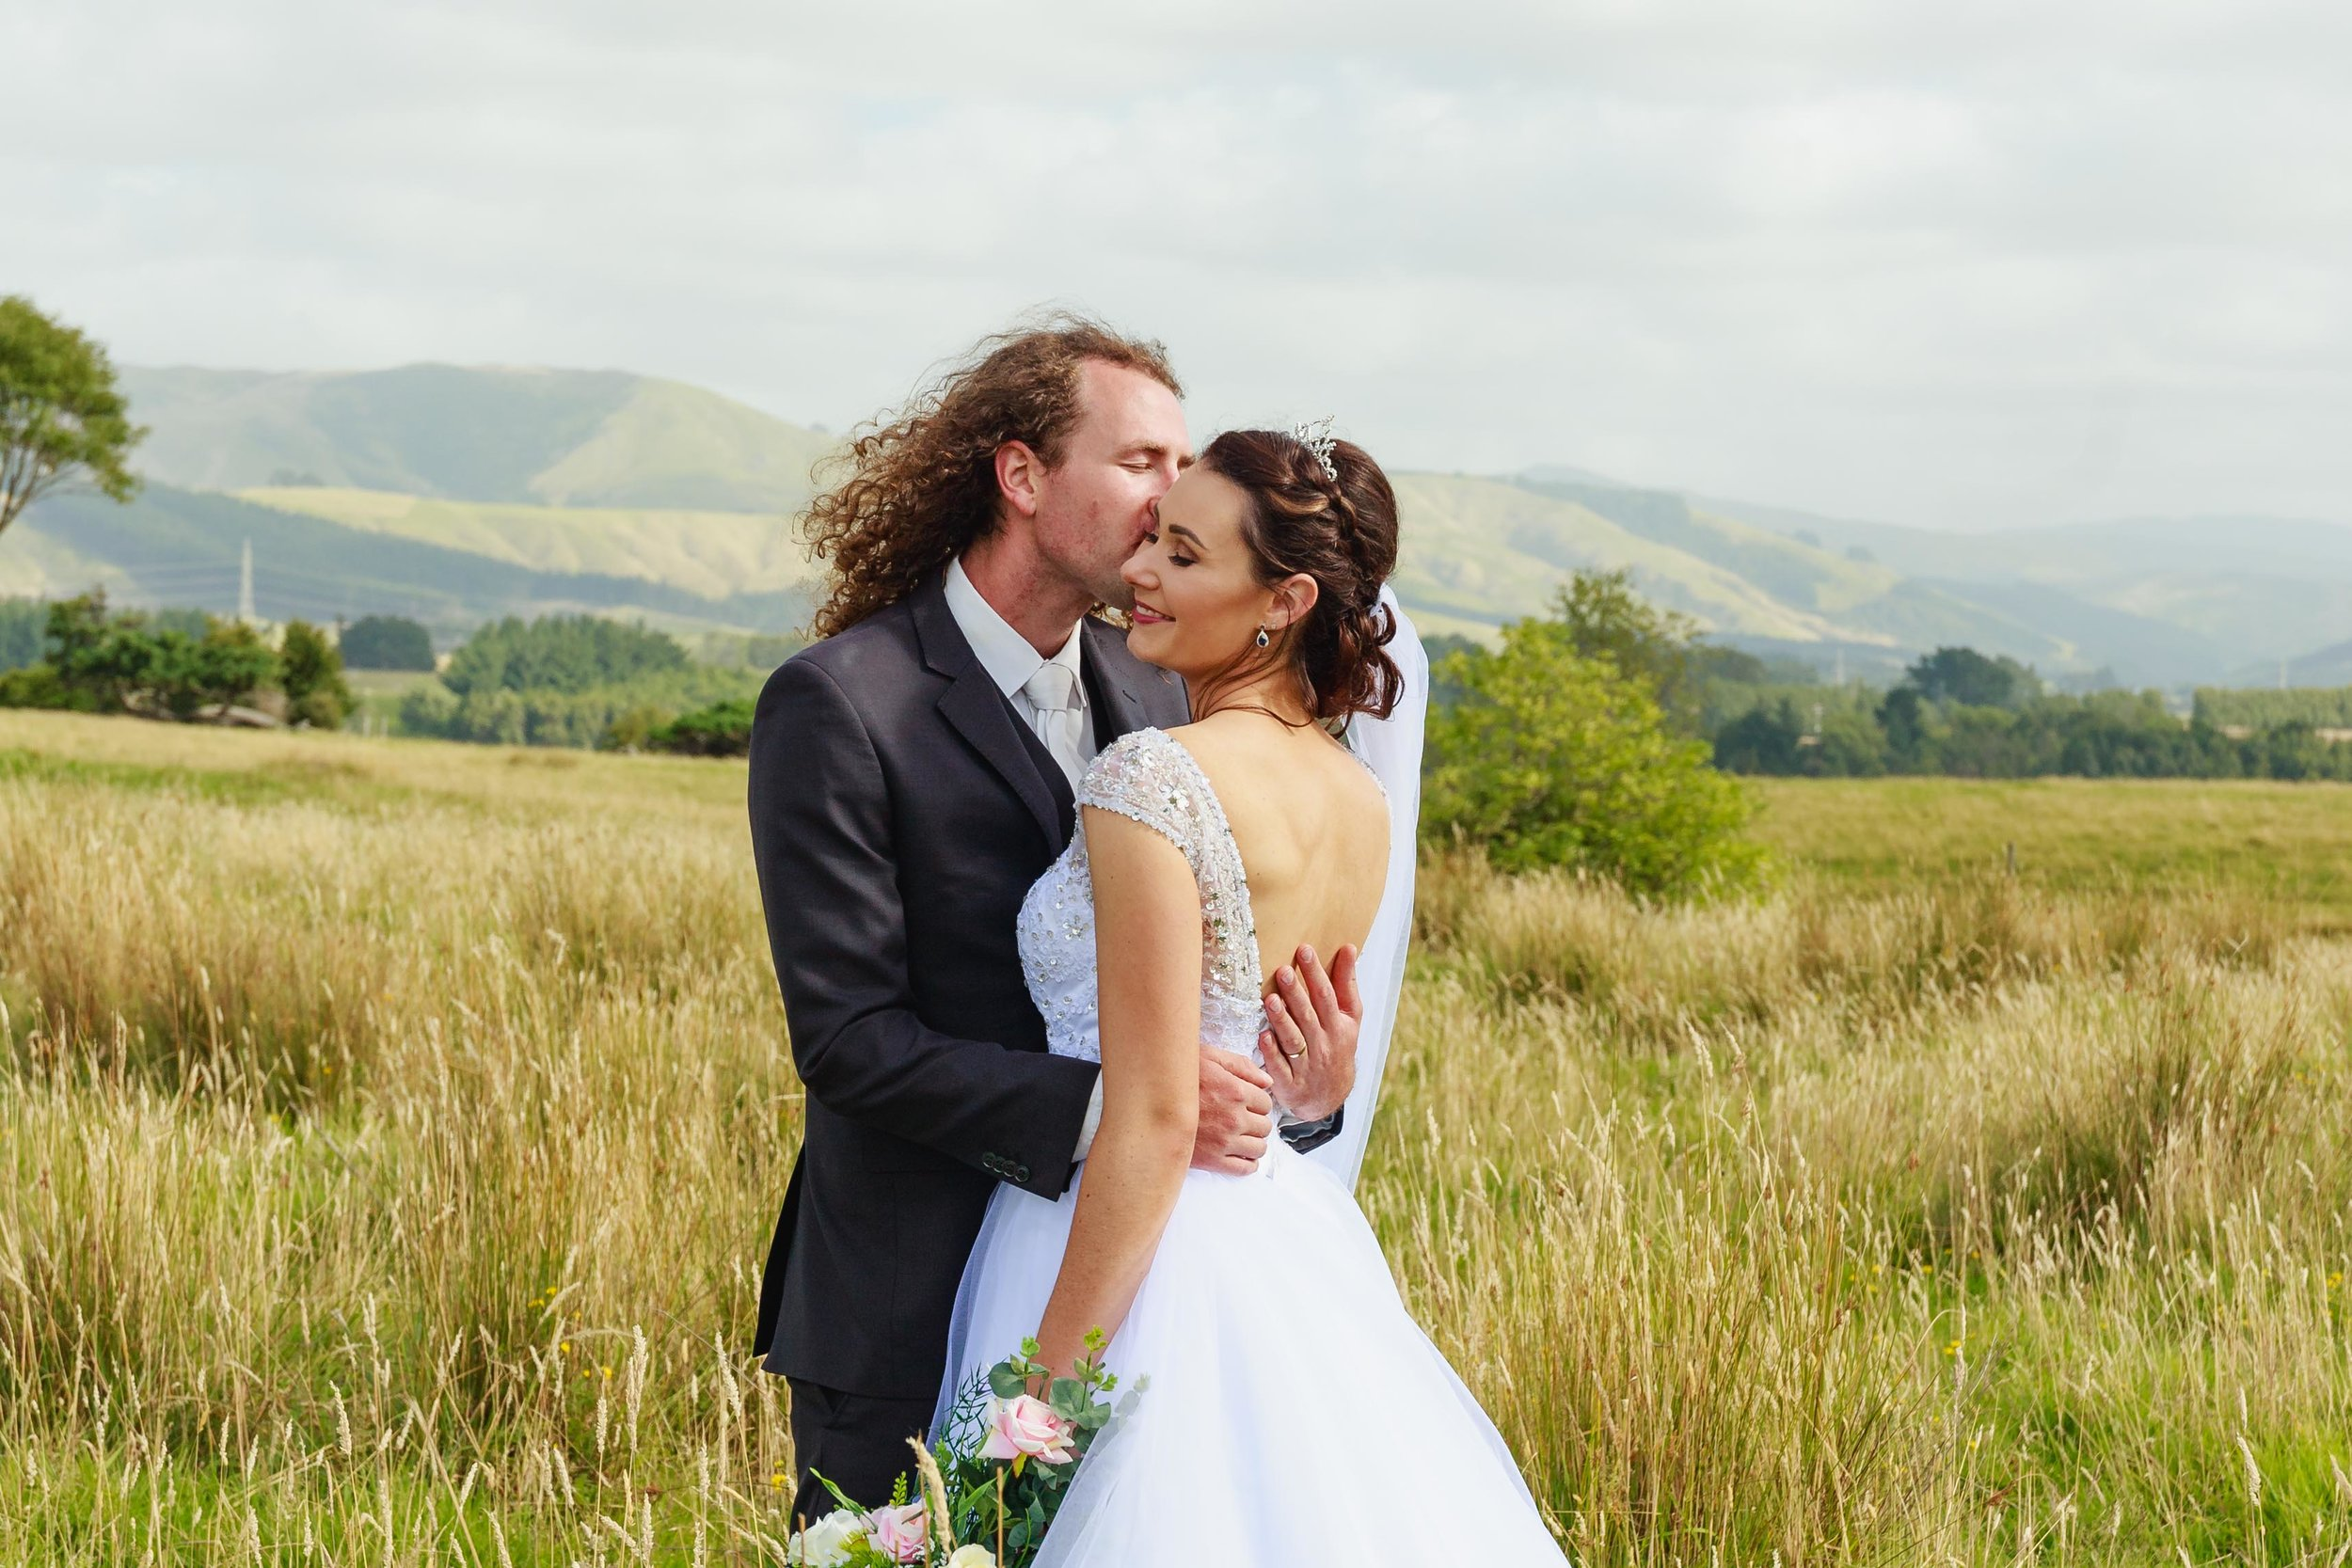 highlight-wedding-photography-palmerston-north-new-zealand